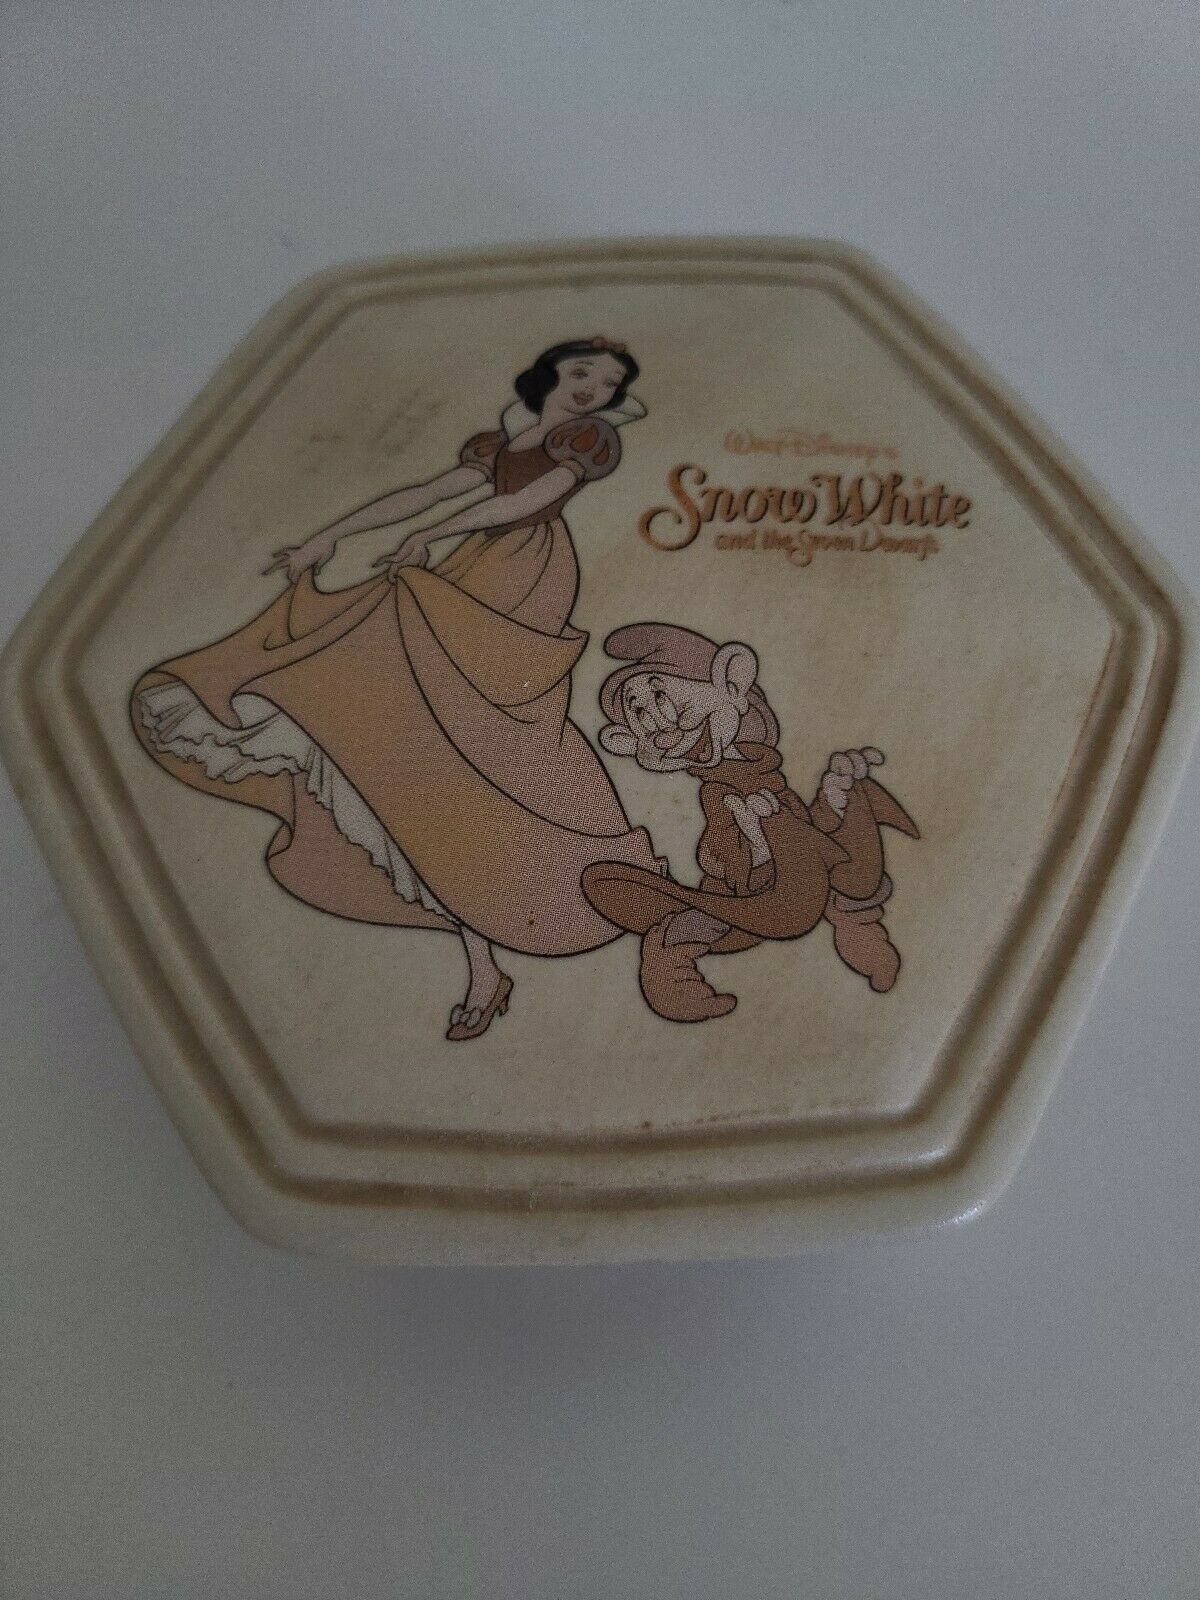 Primary image for Snow White Seven Dwarfs 70th Anniversary Disney Jewelry Trinket Box Porcelain